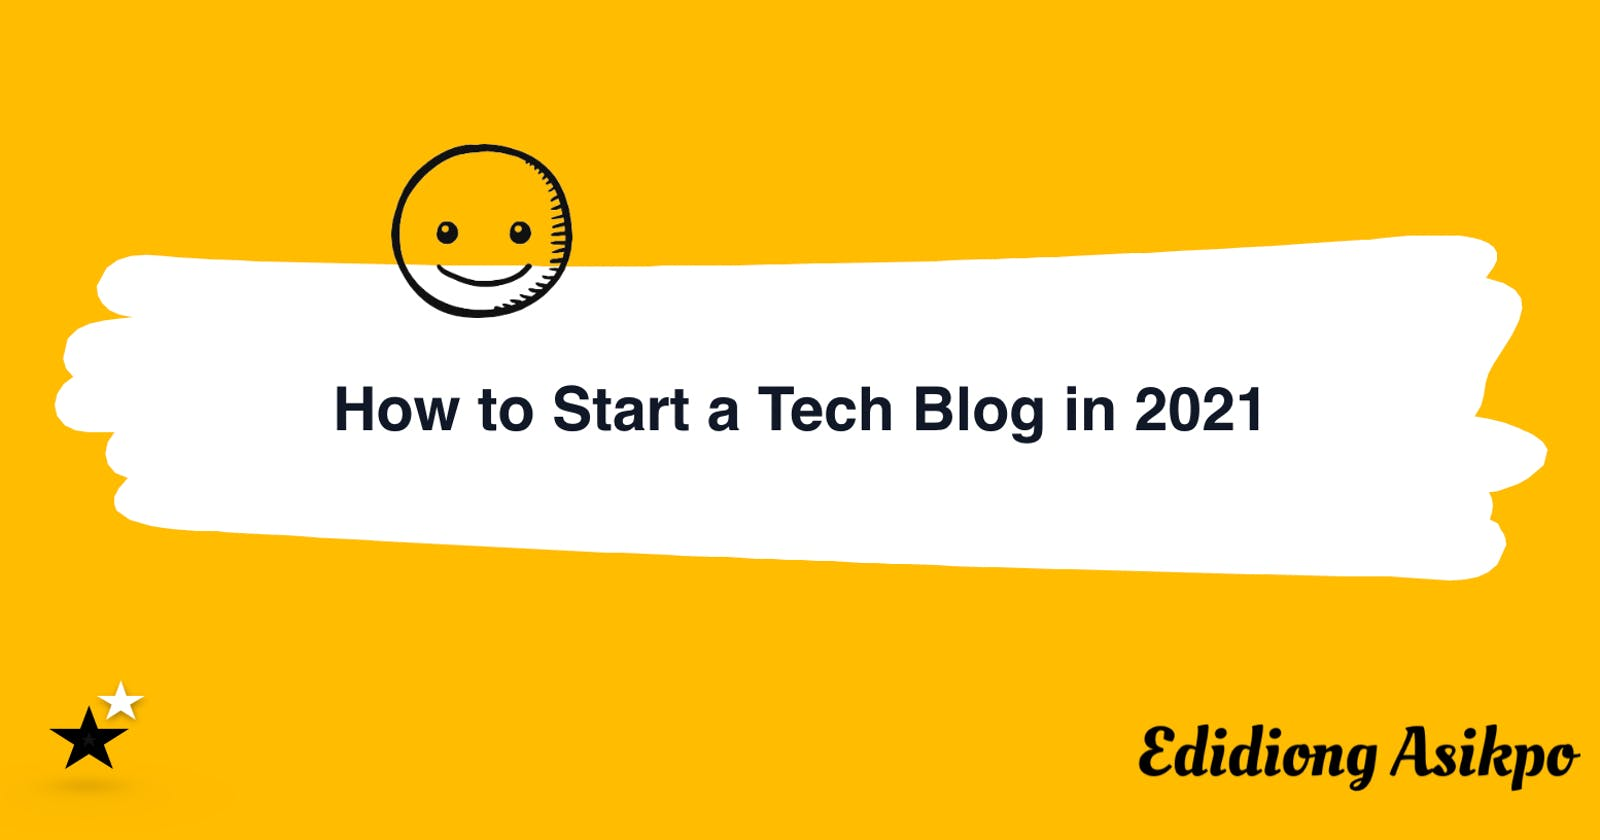 How to Start a Tech Blog in 2021